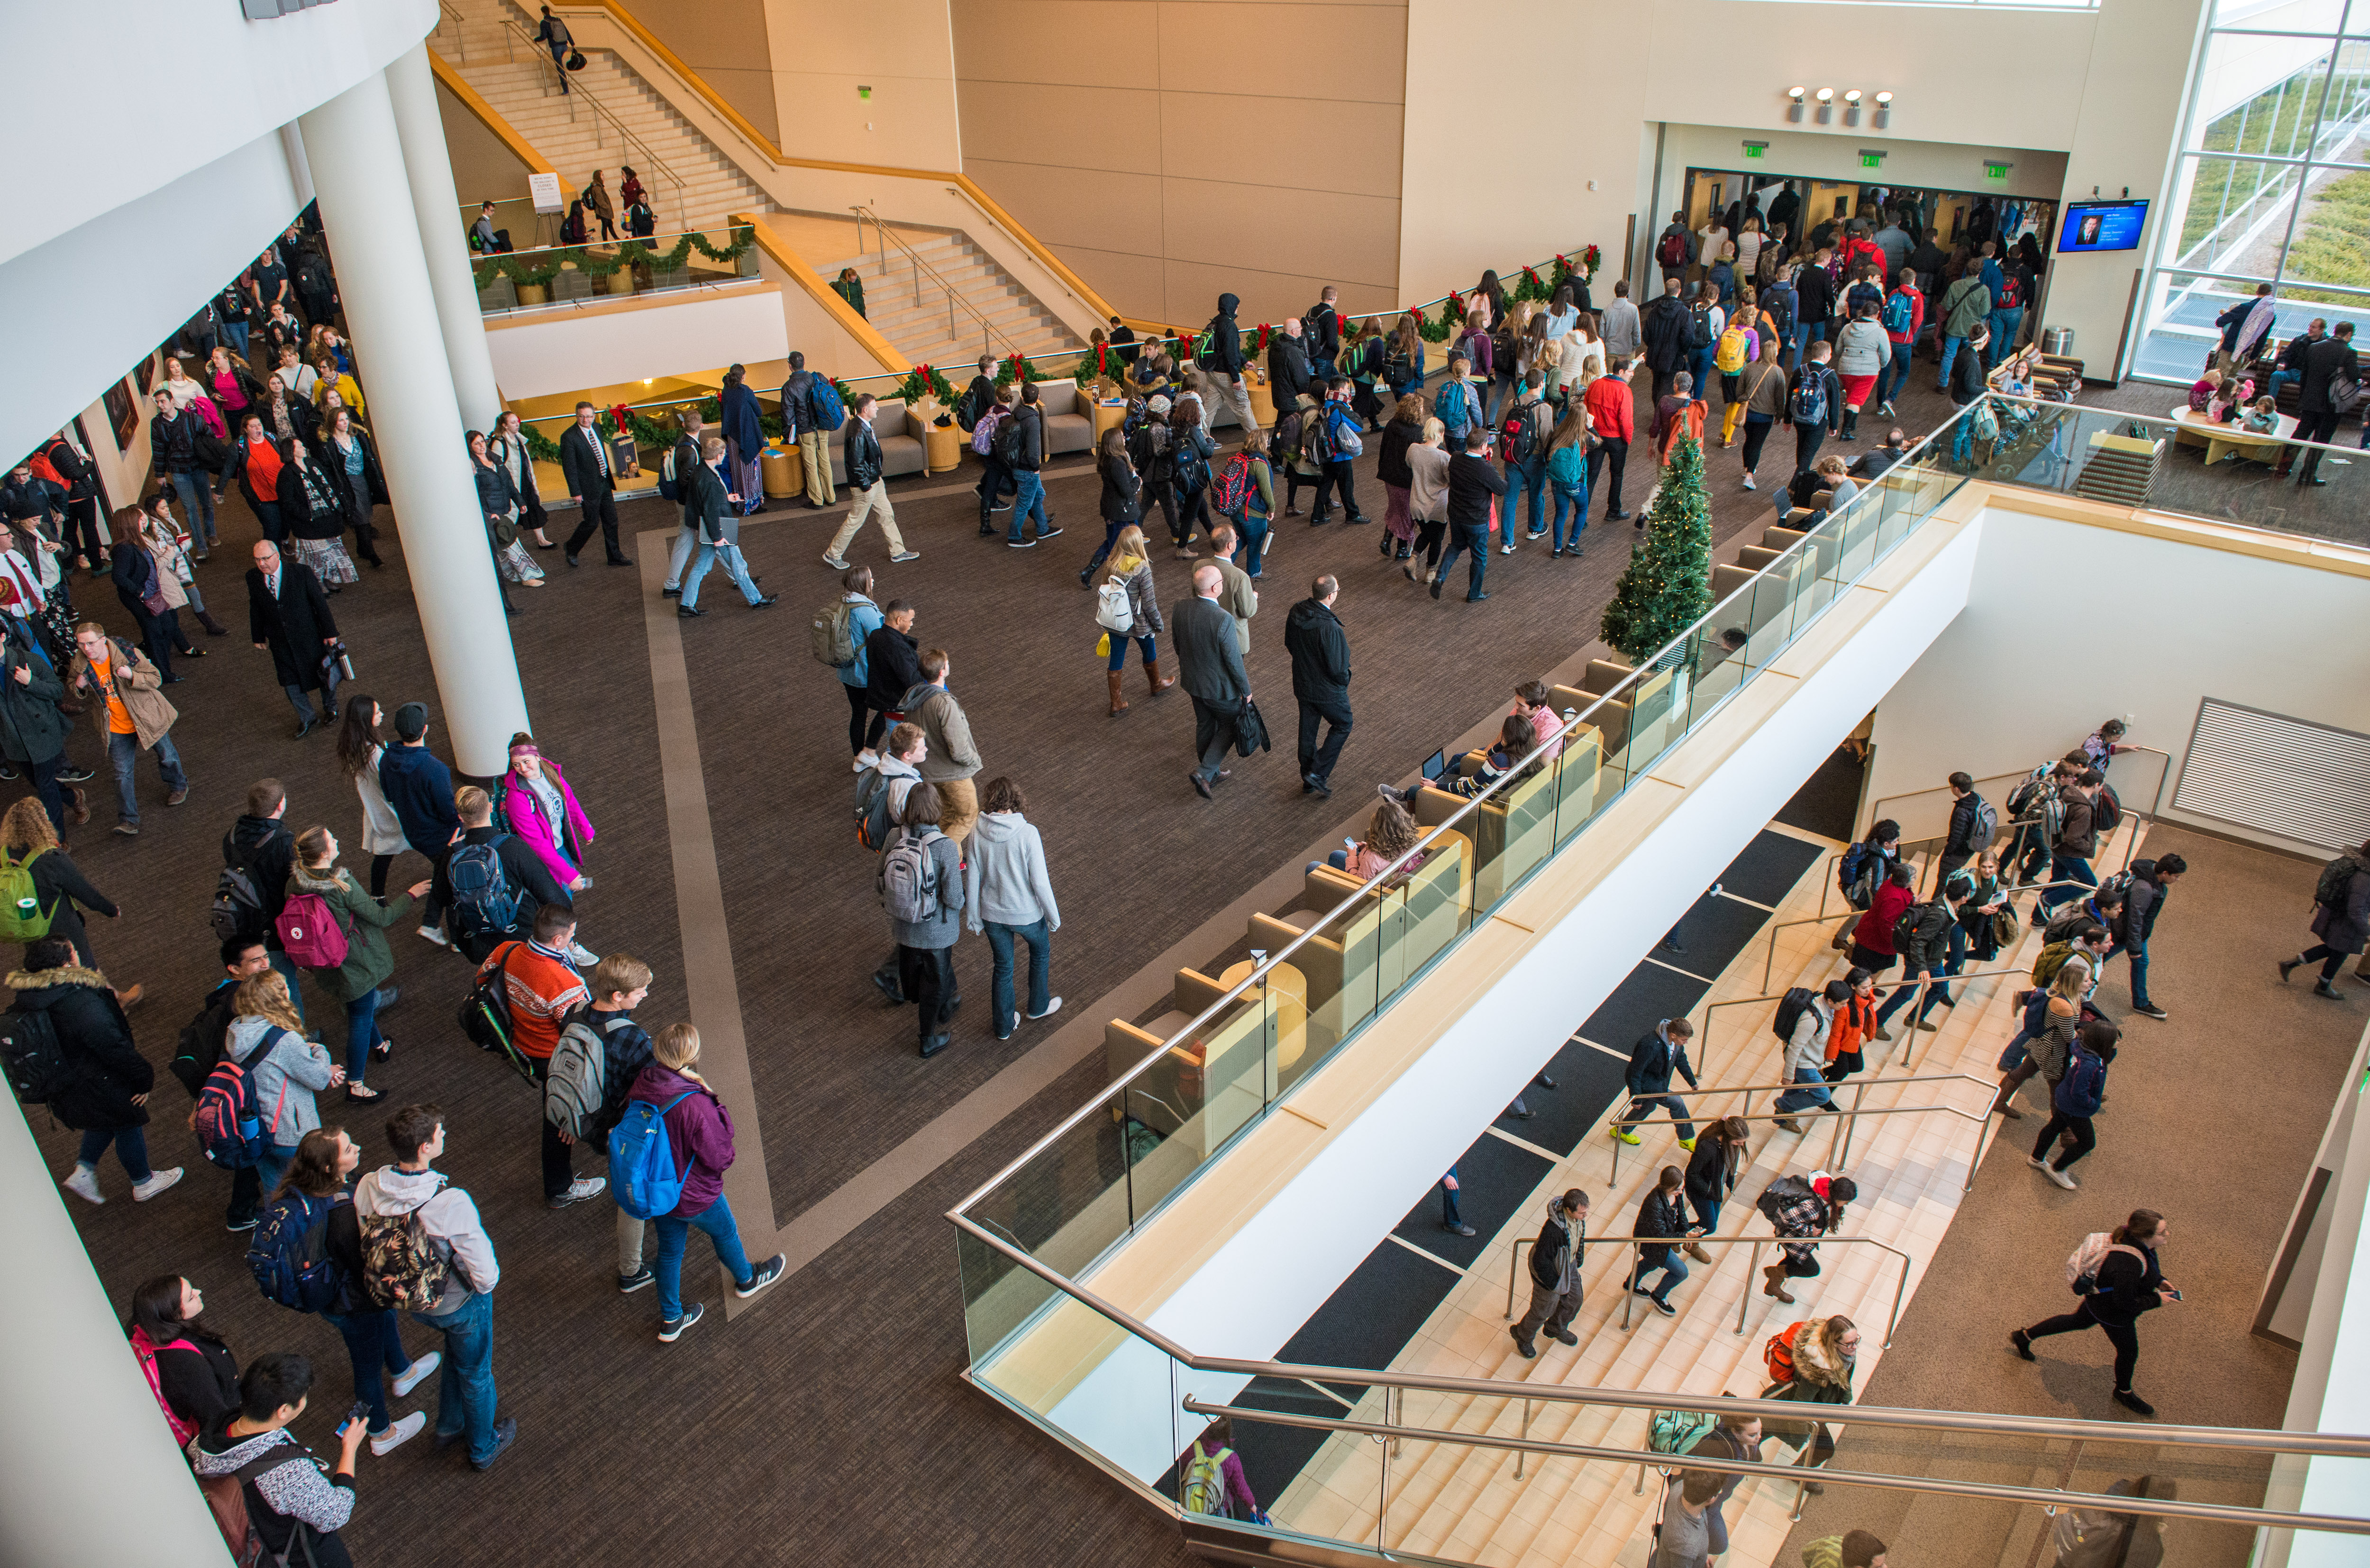 Students leave the BYU-Idaho Center after a devotional where Sister Jean B. Bingham, Relief Society general president, spoke about keeping an eternal perspective.